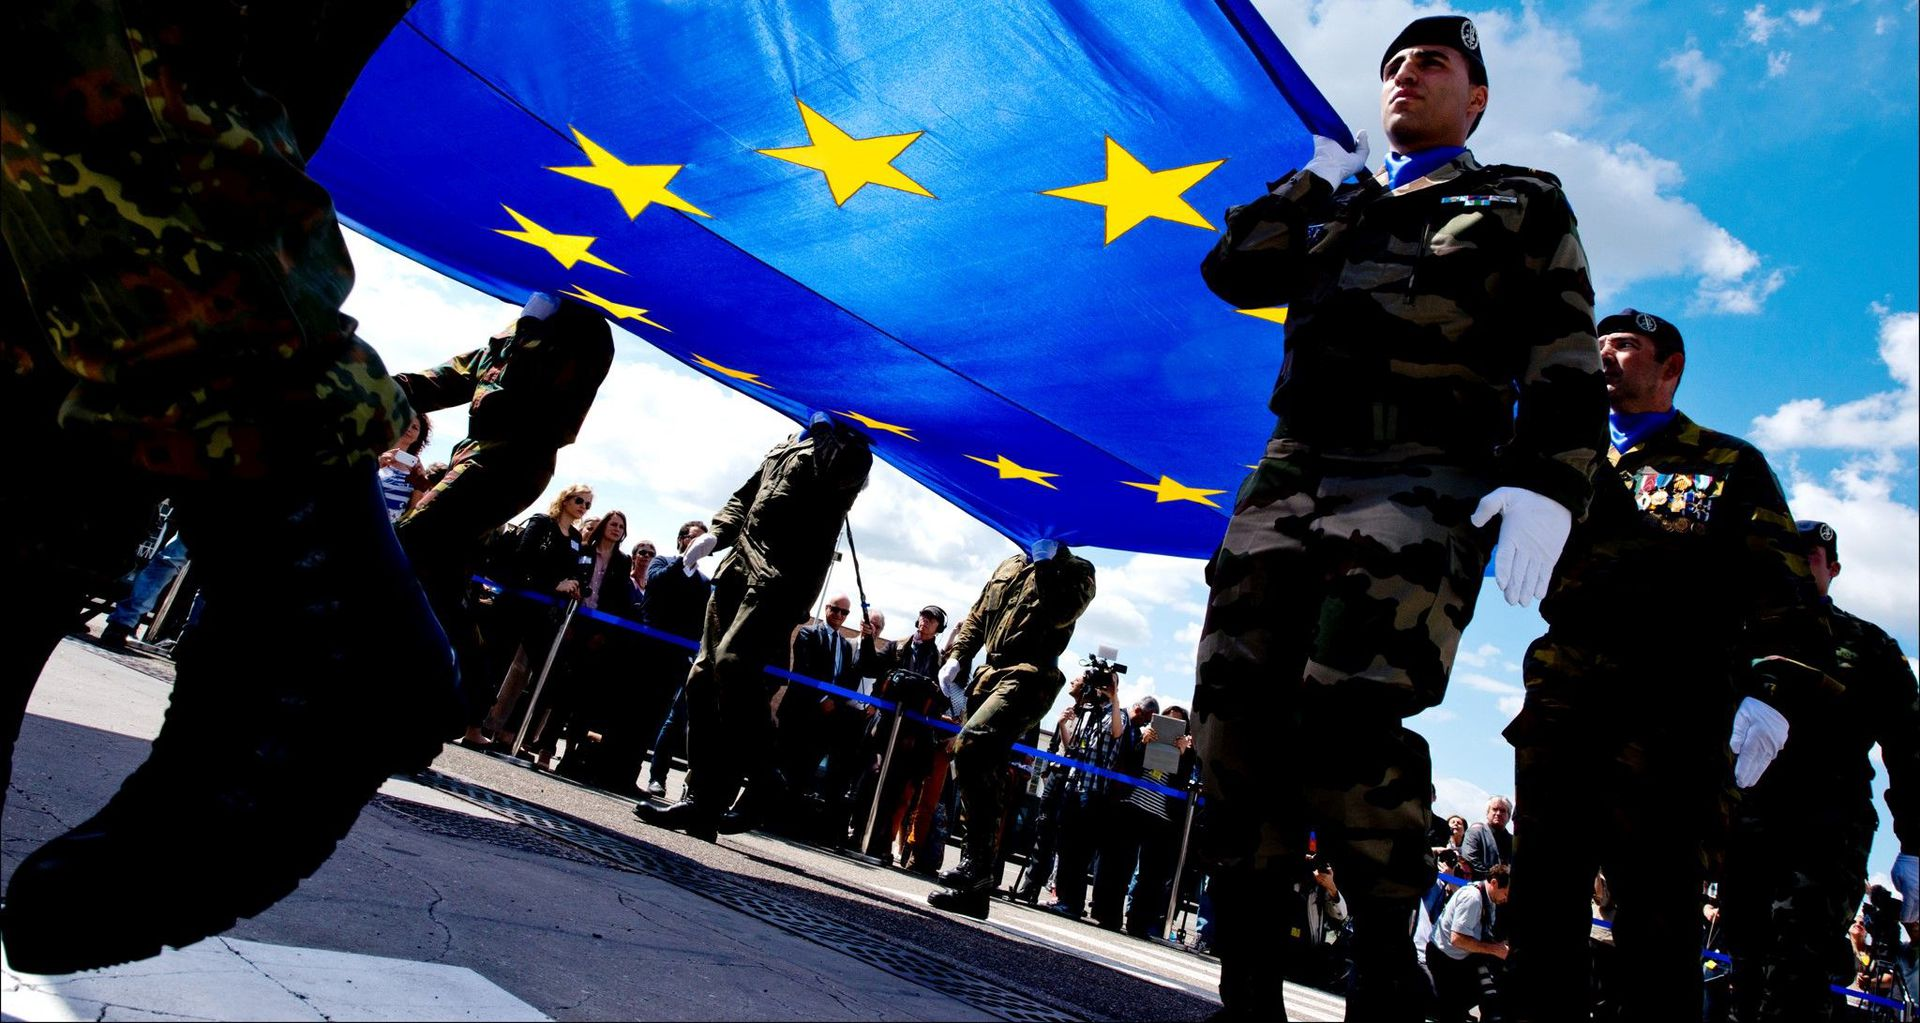 European Defence Expenditure Up But Spending in Key Areas Falling Short